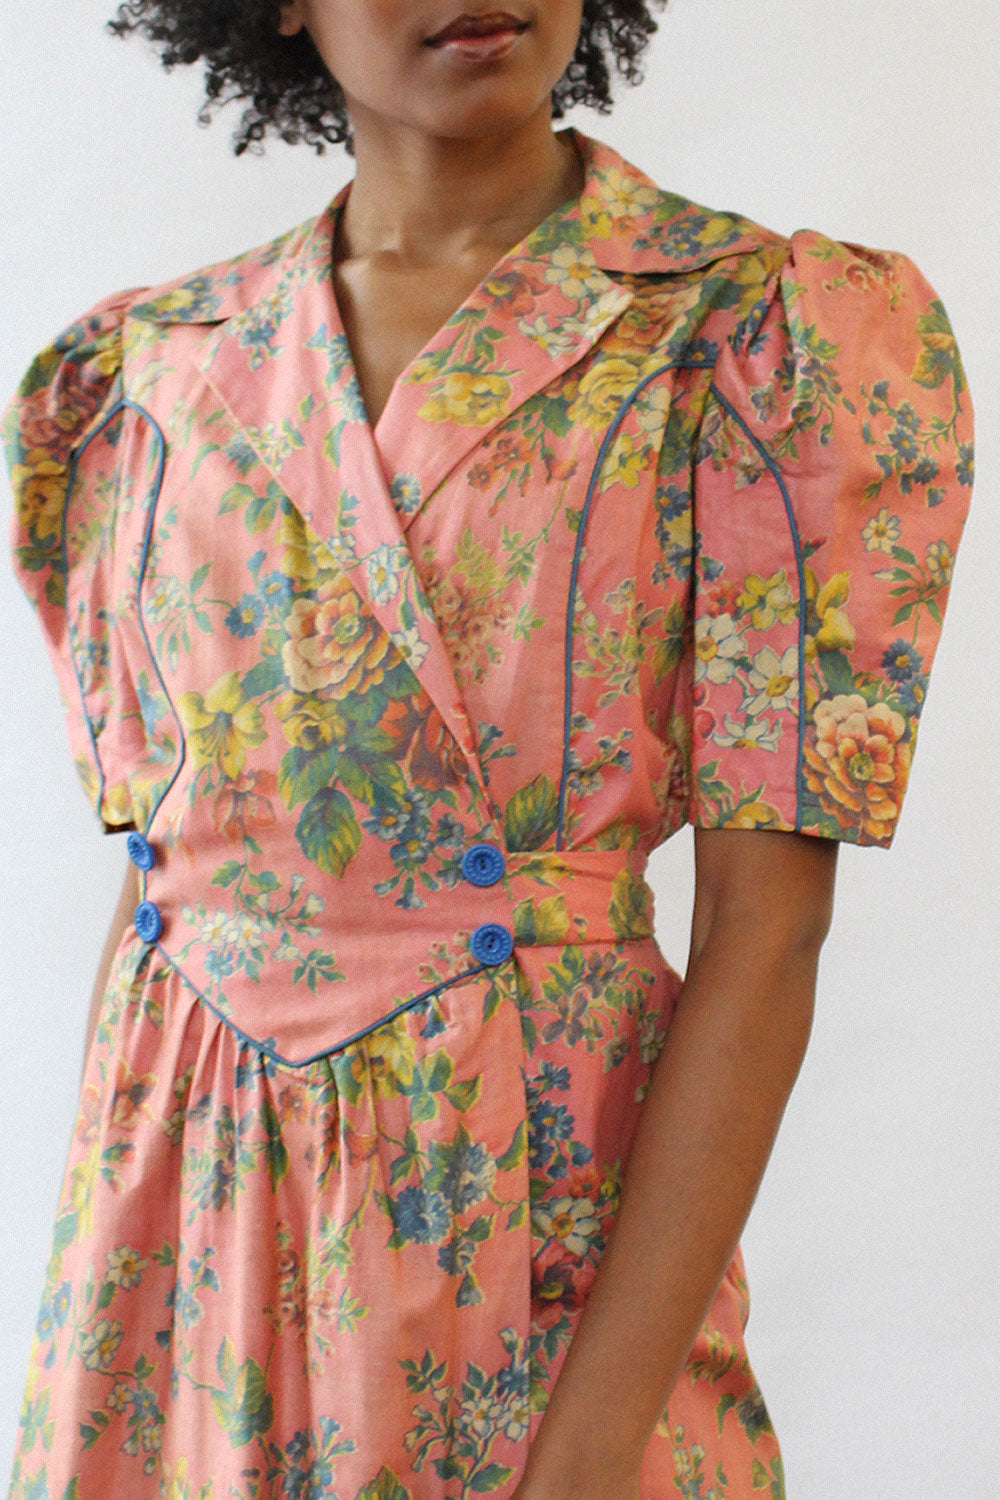 Diana Dean 1940s Floral Robe Dress M/L